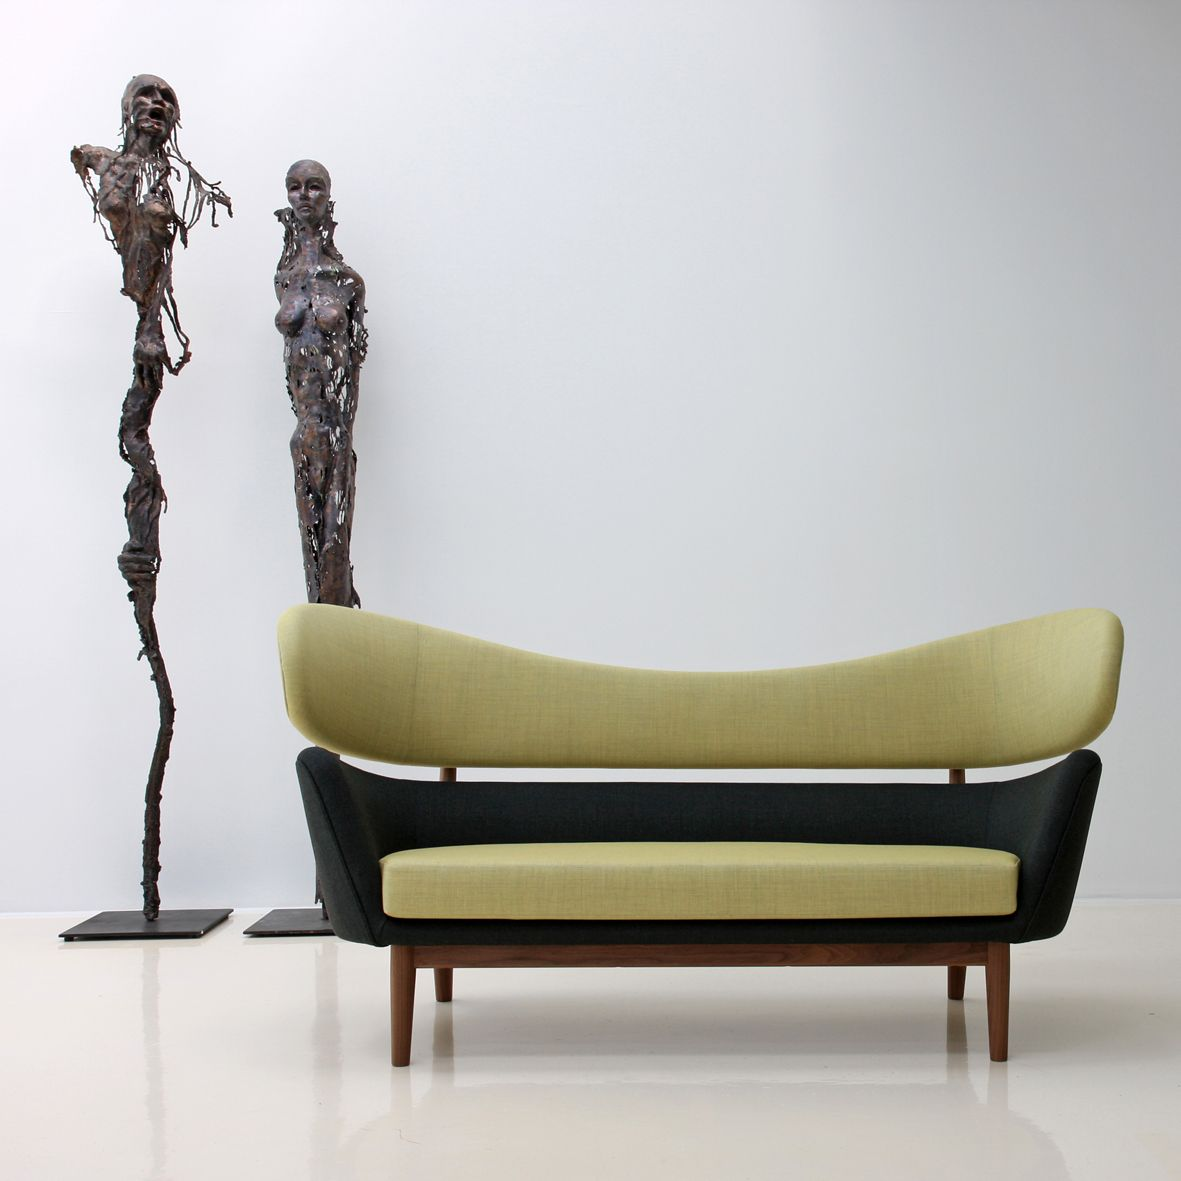 This is why 50s furniture rules beautiful sofa by designer finn juhl who introduced danish modern minimalist wood furniture to america